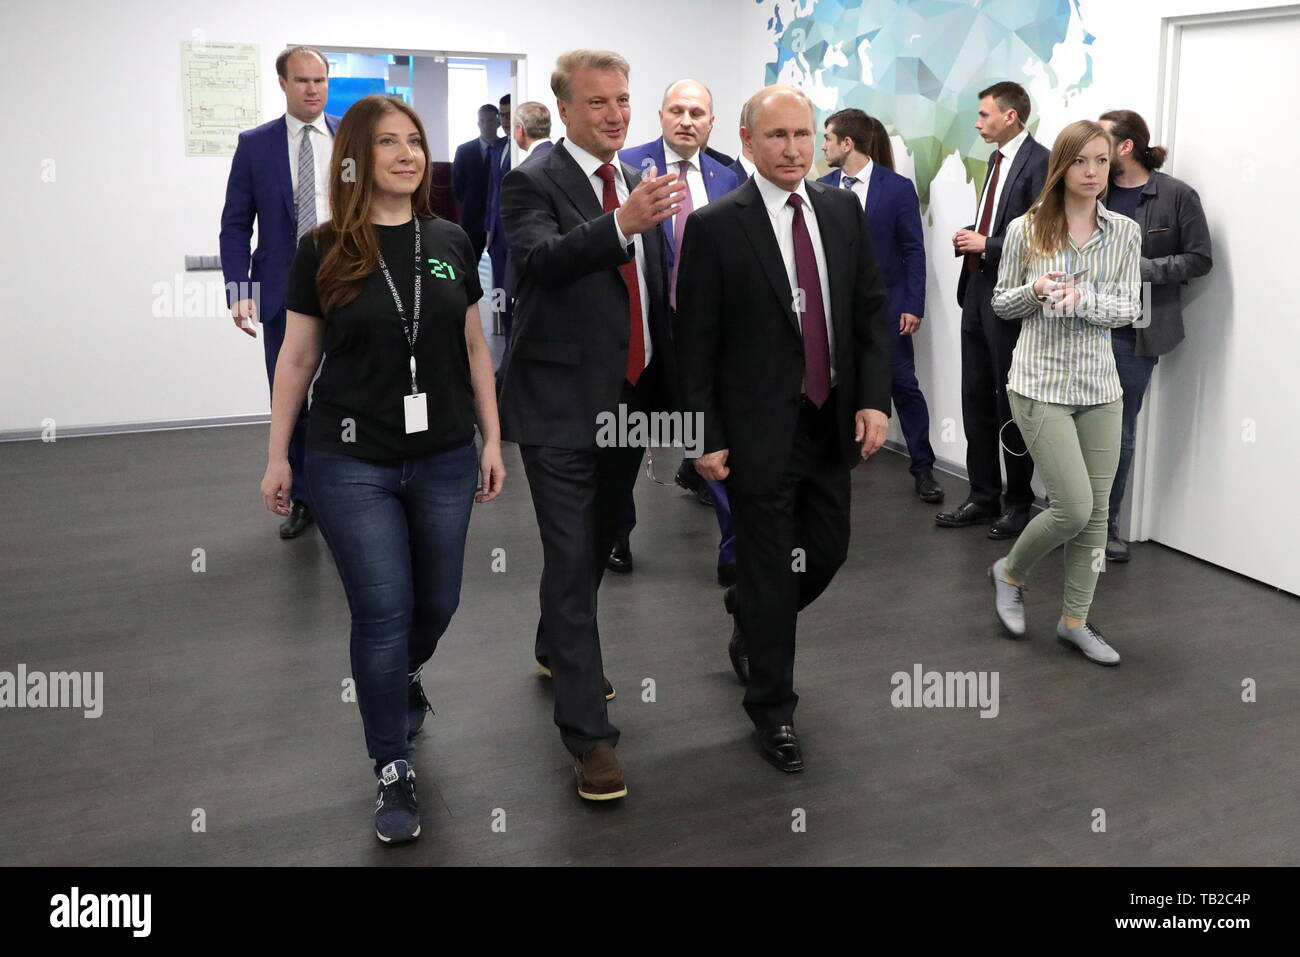 Moscow, Russia. 30th May, 2019. MOSCOW, RUSSIA - MAY 30, 2019: Russia's President Vladimir Putin and German Gref (R-L front), Sberbank CEO and Executive Board Chairman, visit School 21, an IT school opened by Sberbank last year to provide hi-tech companies with programmers. Mikhail Klimentyev/Russian Presidential Press and Information Office/TASS Credit: ITAR-TASS News Agency/Alamy Live News - Stock Image